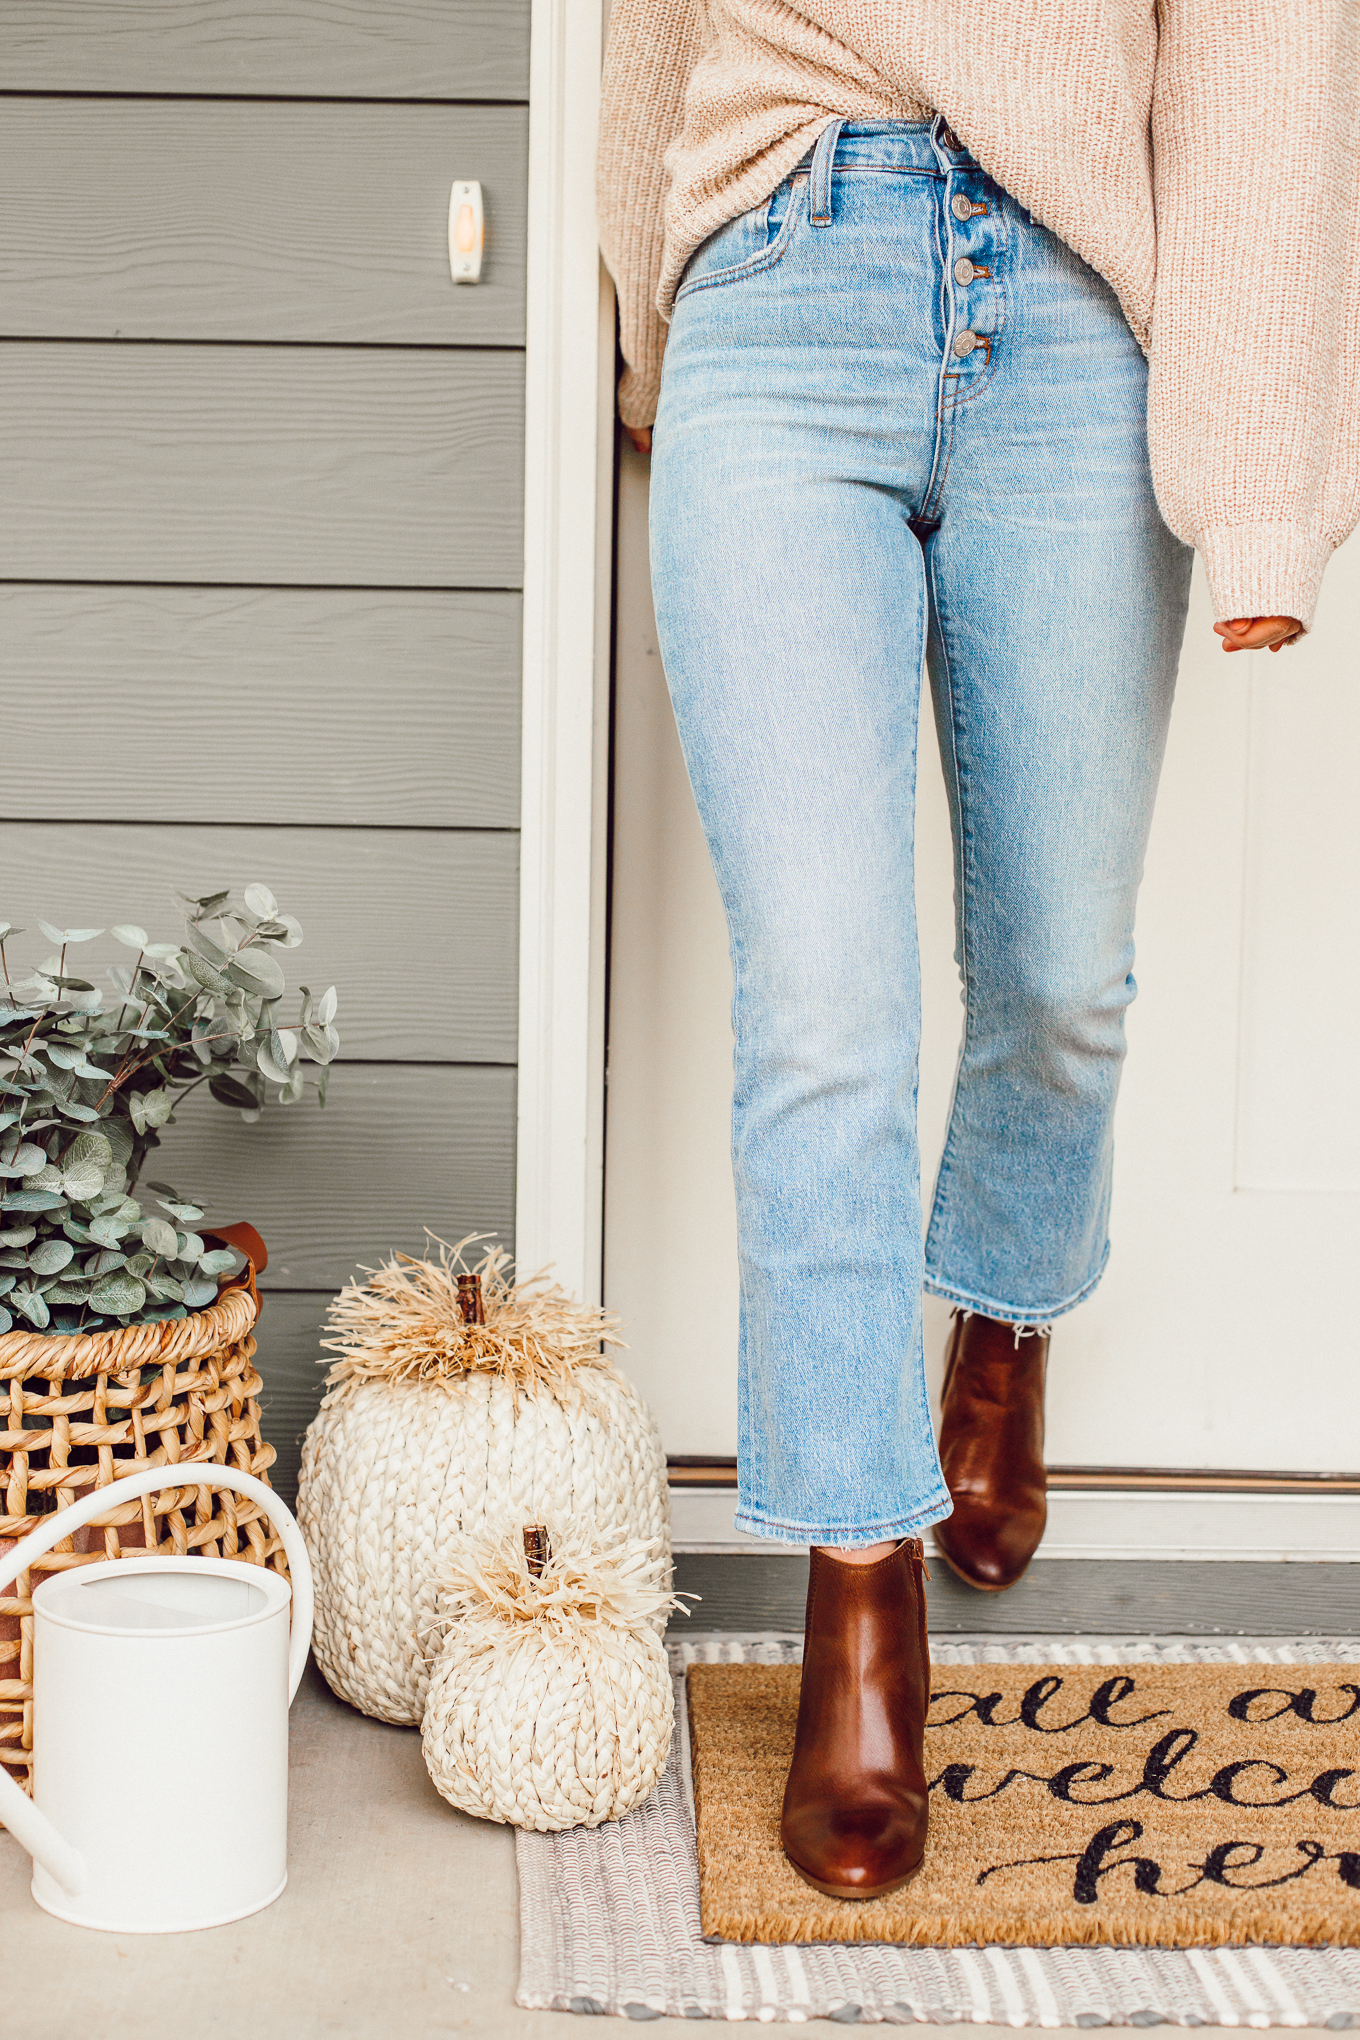 Louella Reese September 2019 Recap | Fall Front Porch Decor